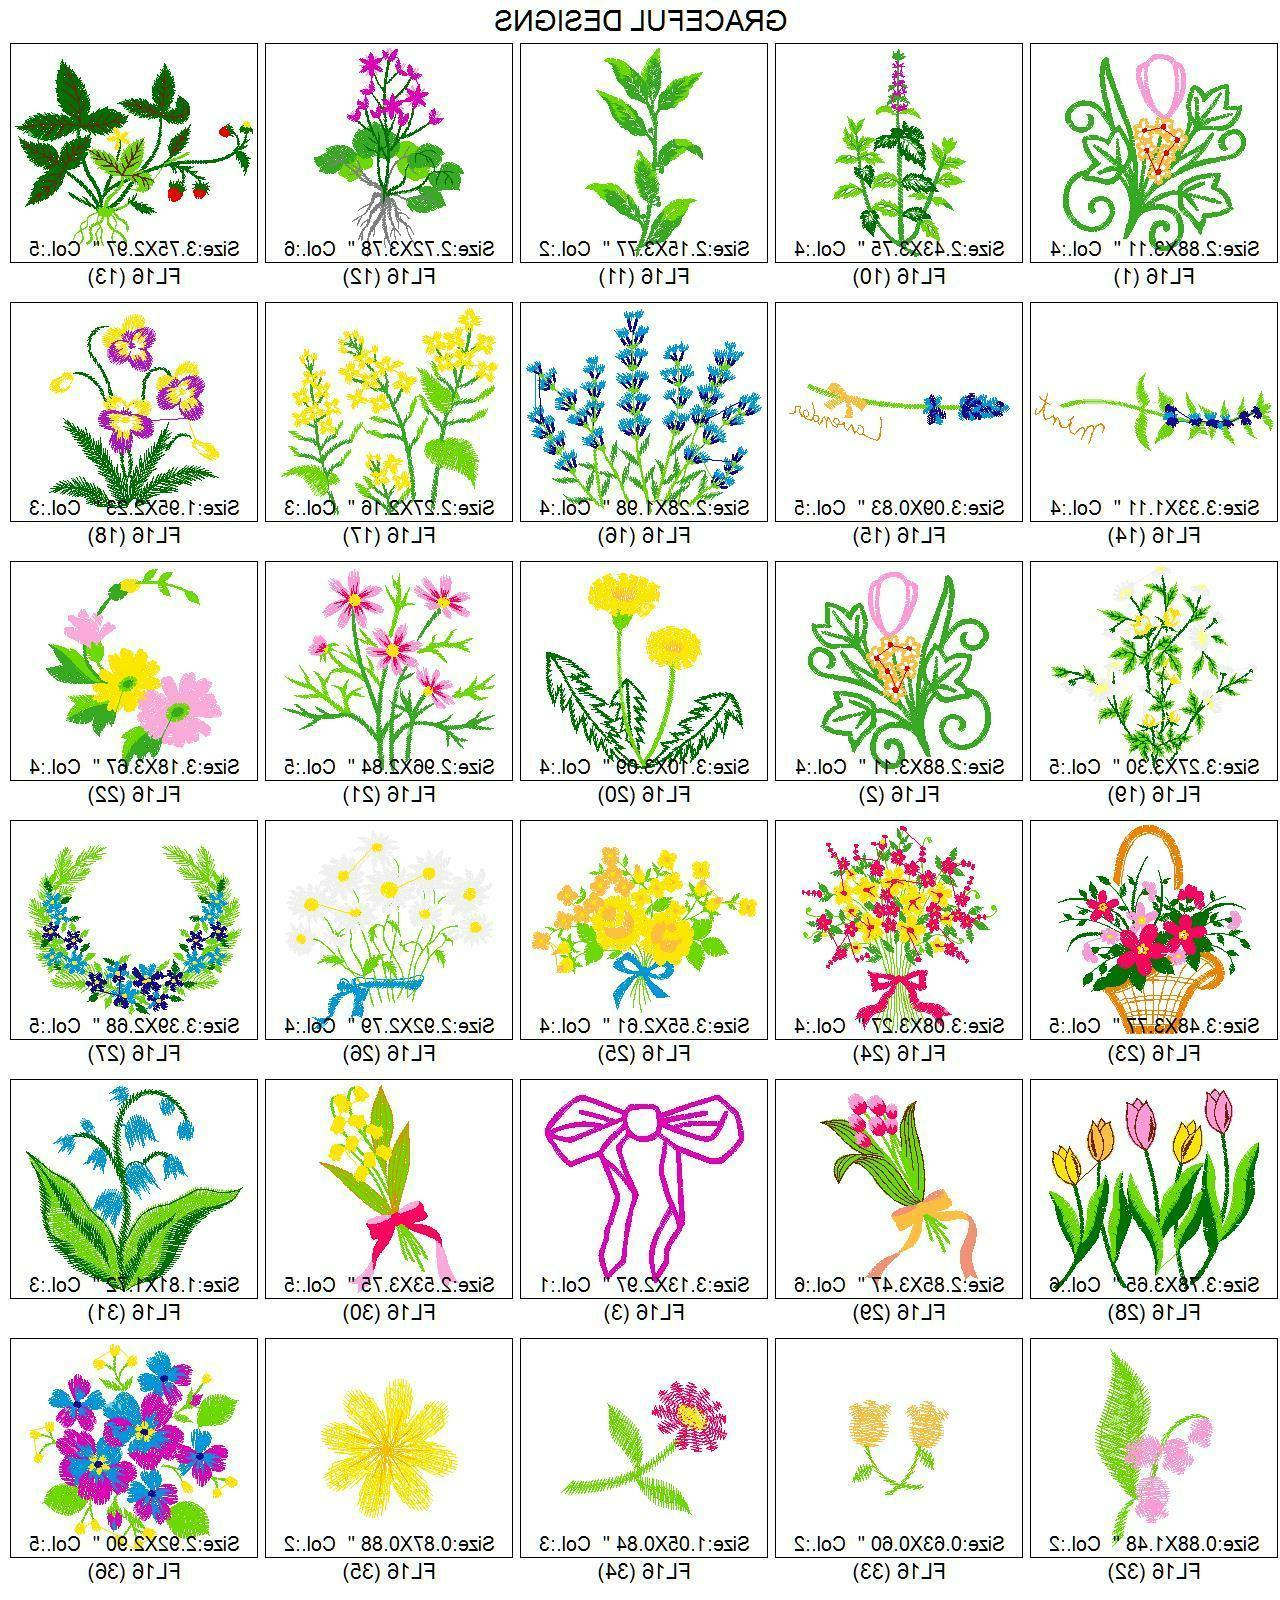 5,700 FLOWERS, GARDEN BROTHER COLLECTION SET